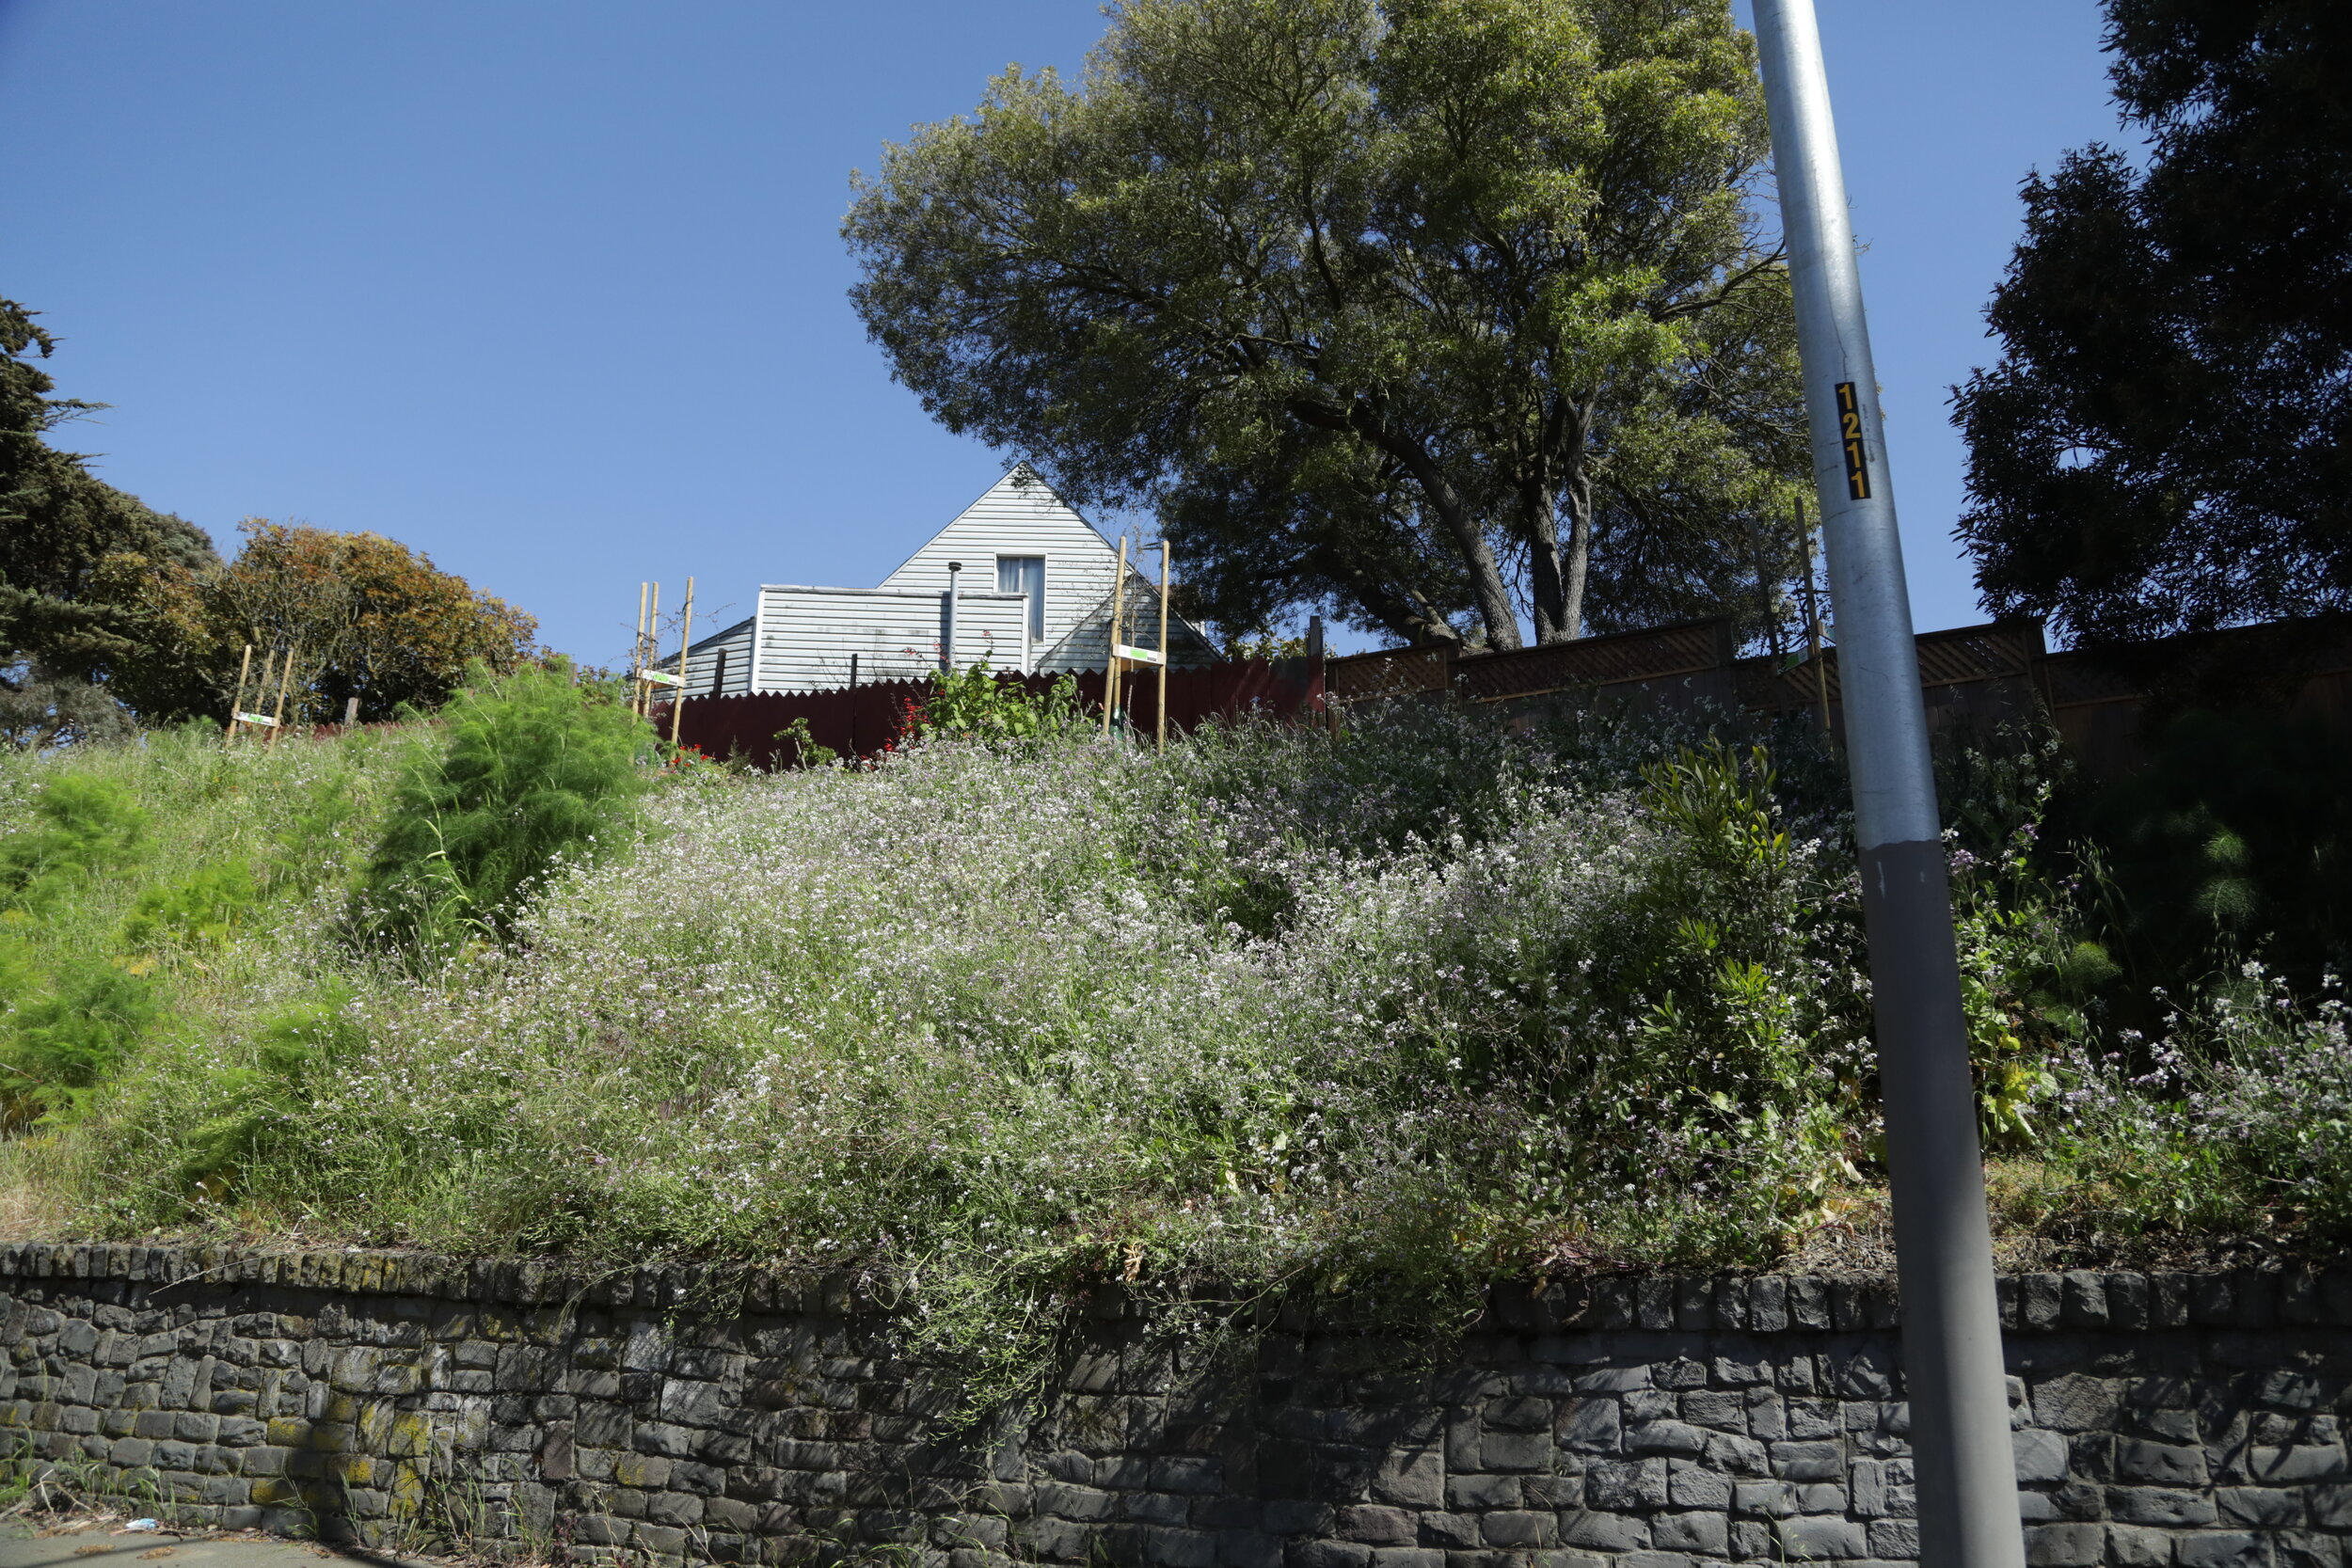 Wide_Slope_Overgrown_House_2.JPG